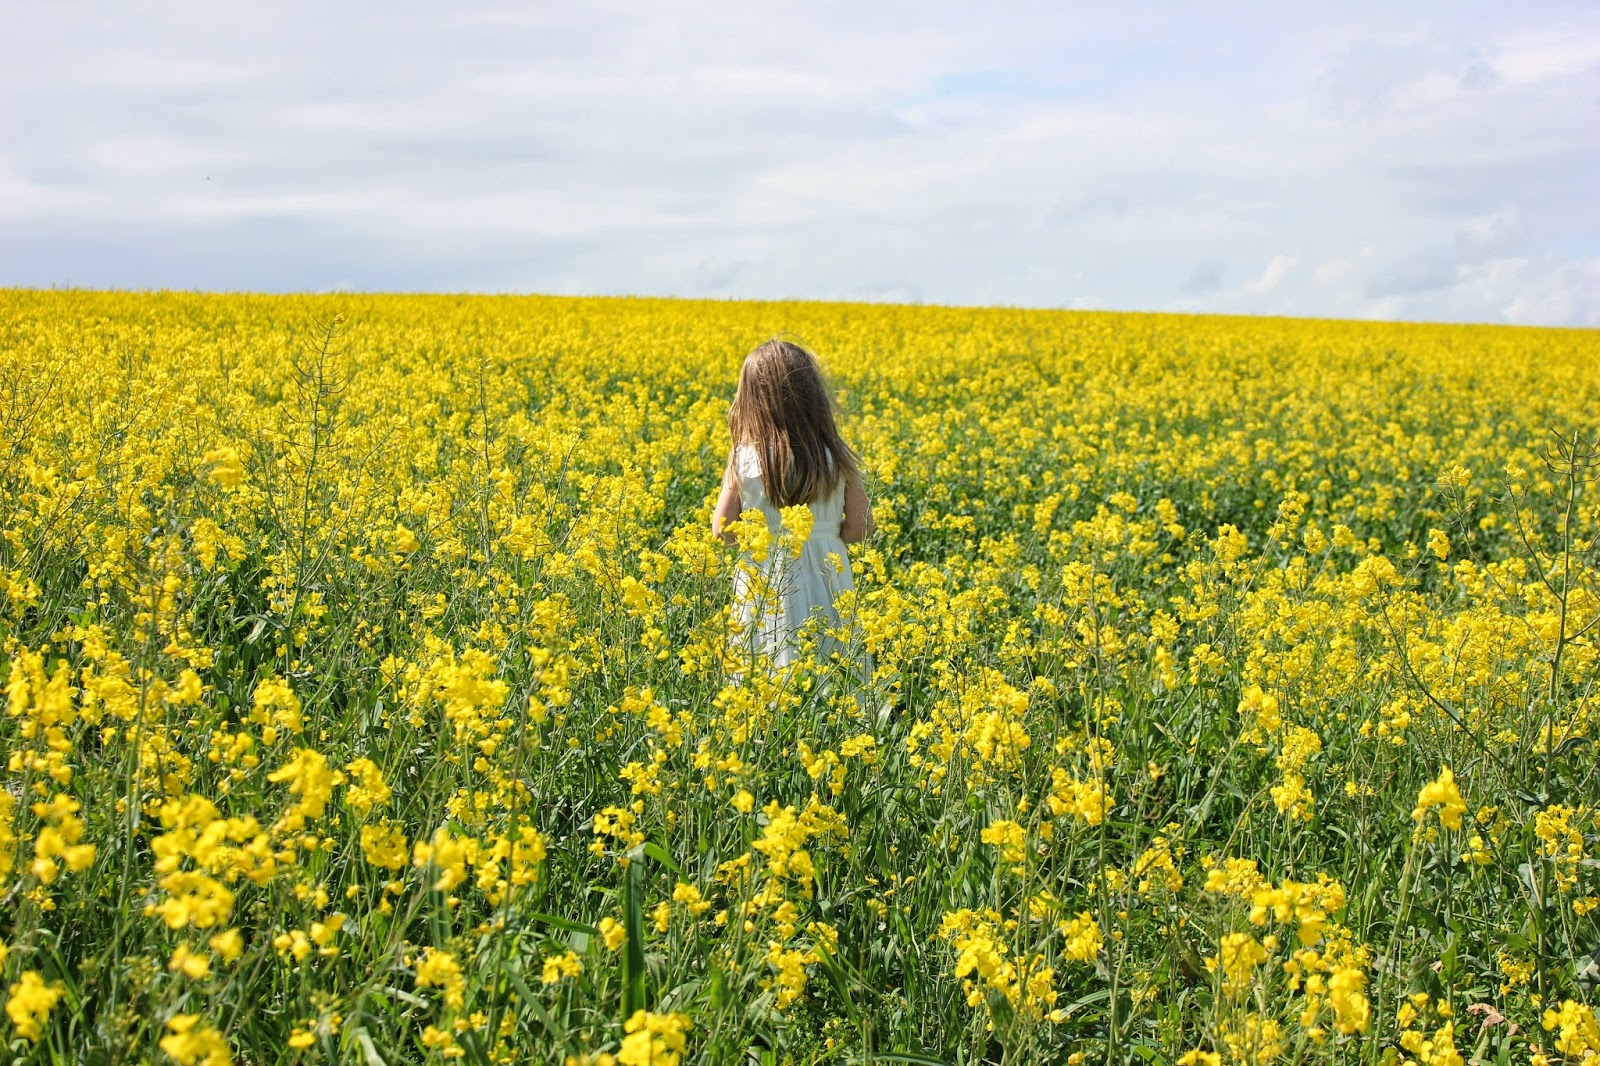 Girl in a golden field of sunshine